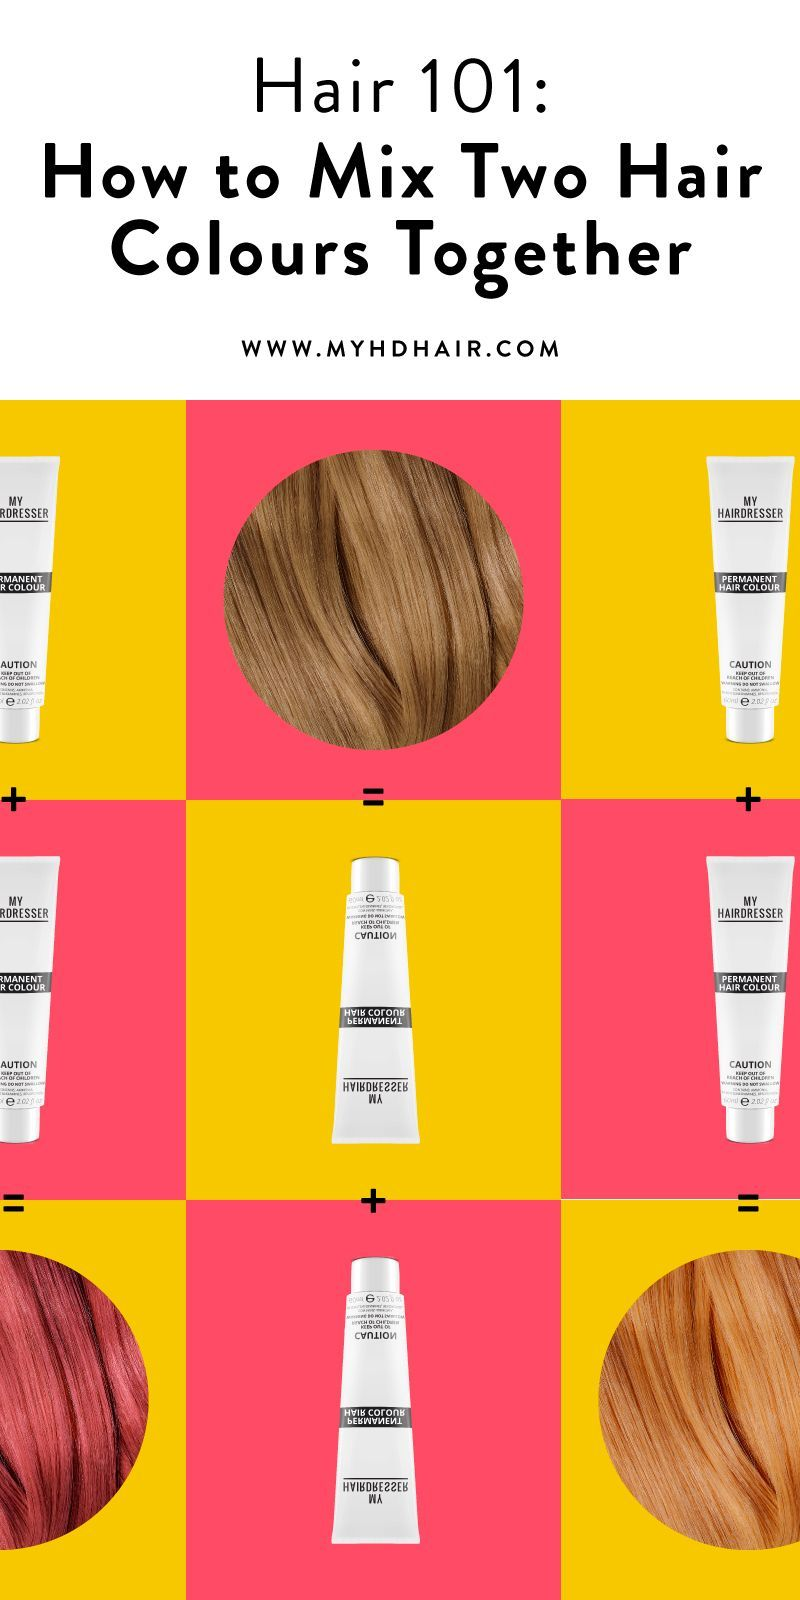 Hair 101 How To Mix Two Hair Colours Together In 2020 Hair Color Guide Dark Blonde Hair Color Hair 101